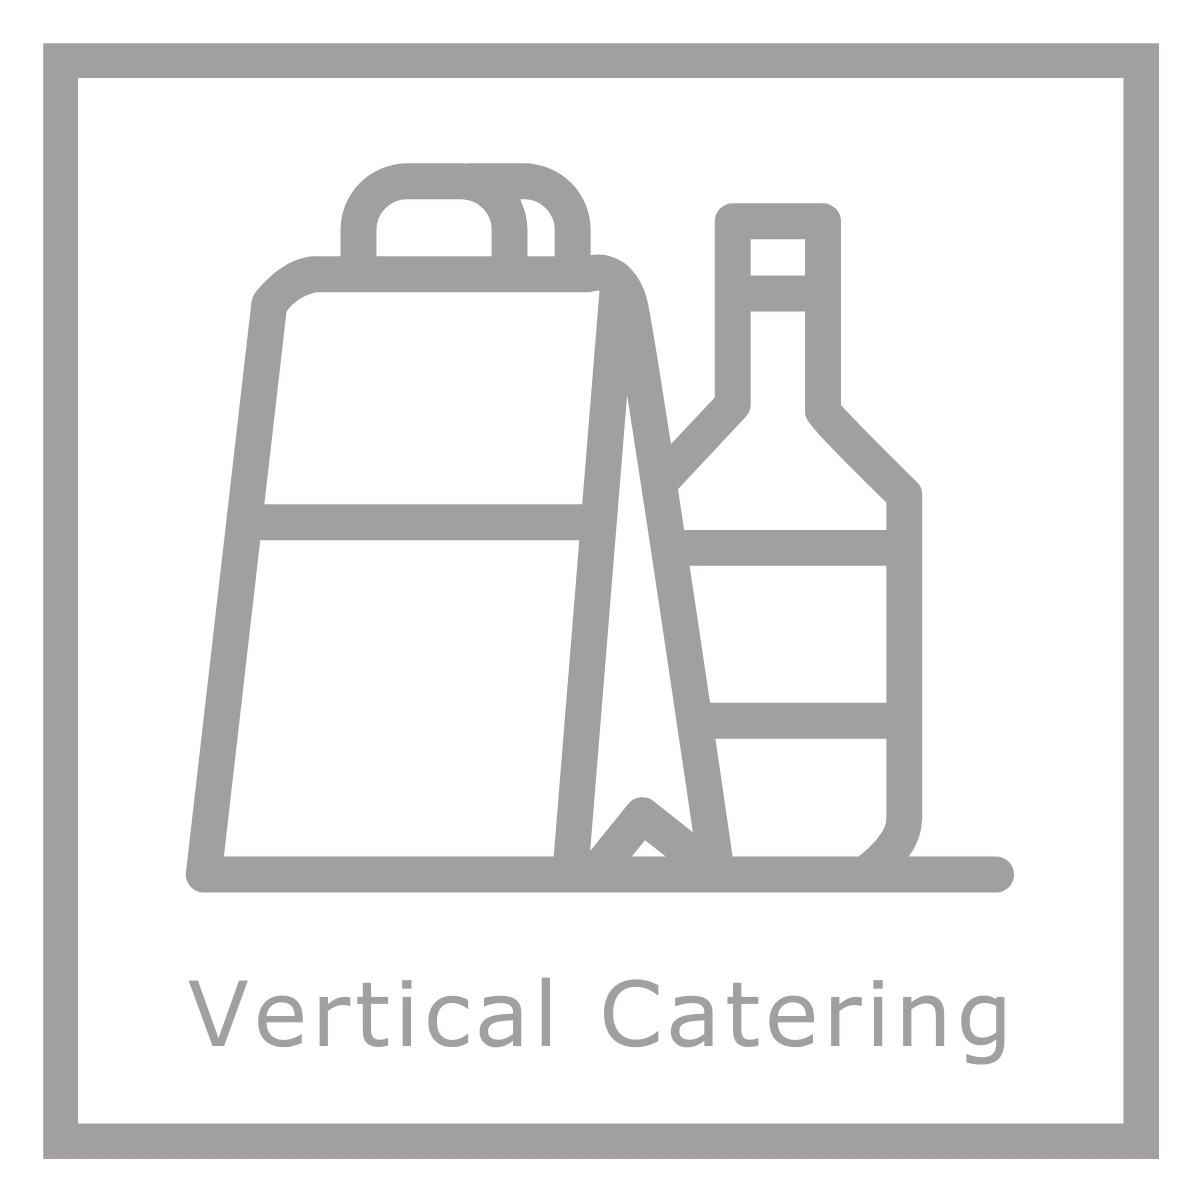 Vertical Catering Service at The Water Tower Lounge- Amenity Center Concierge Services